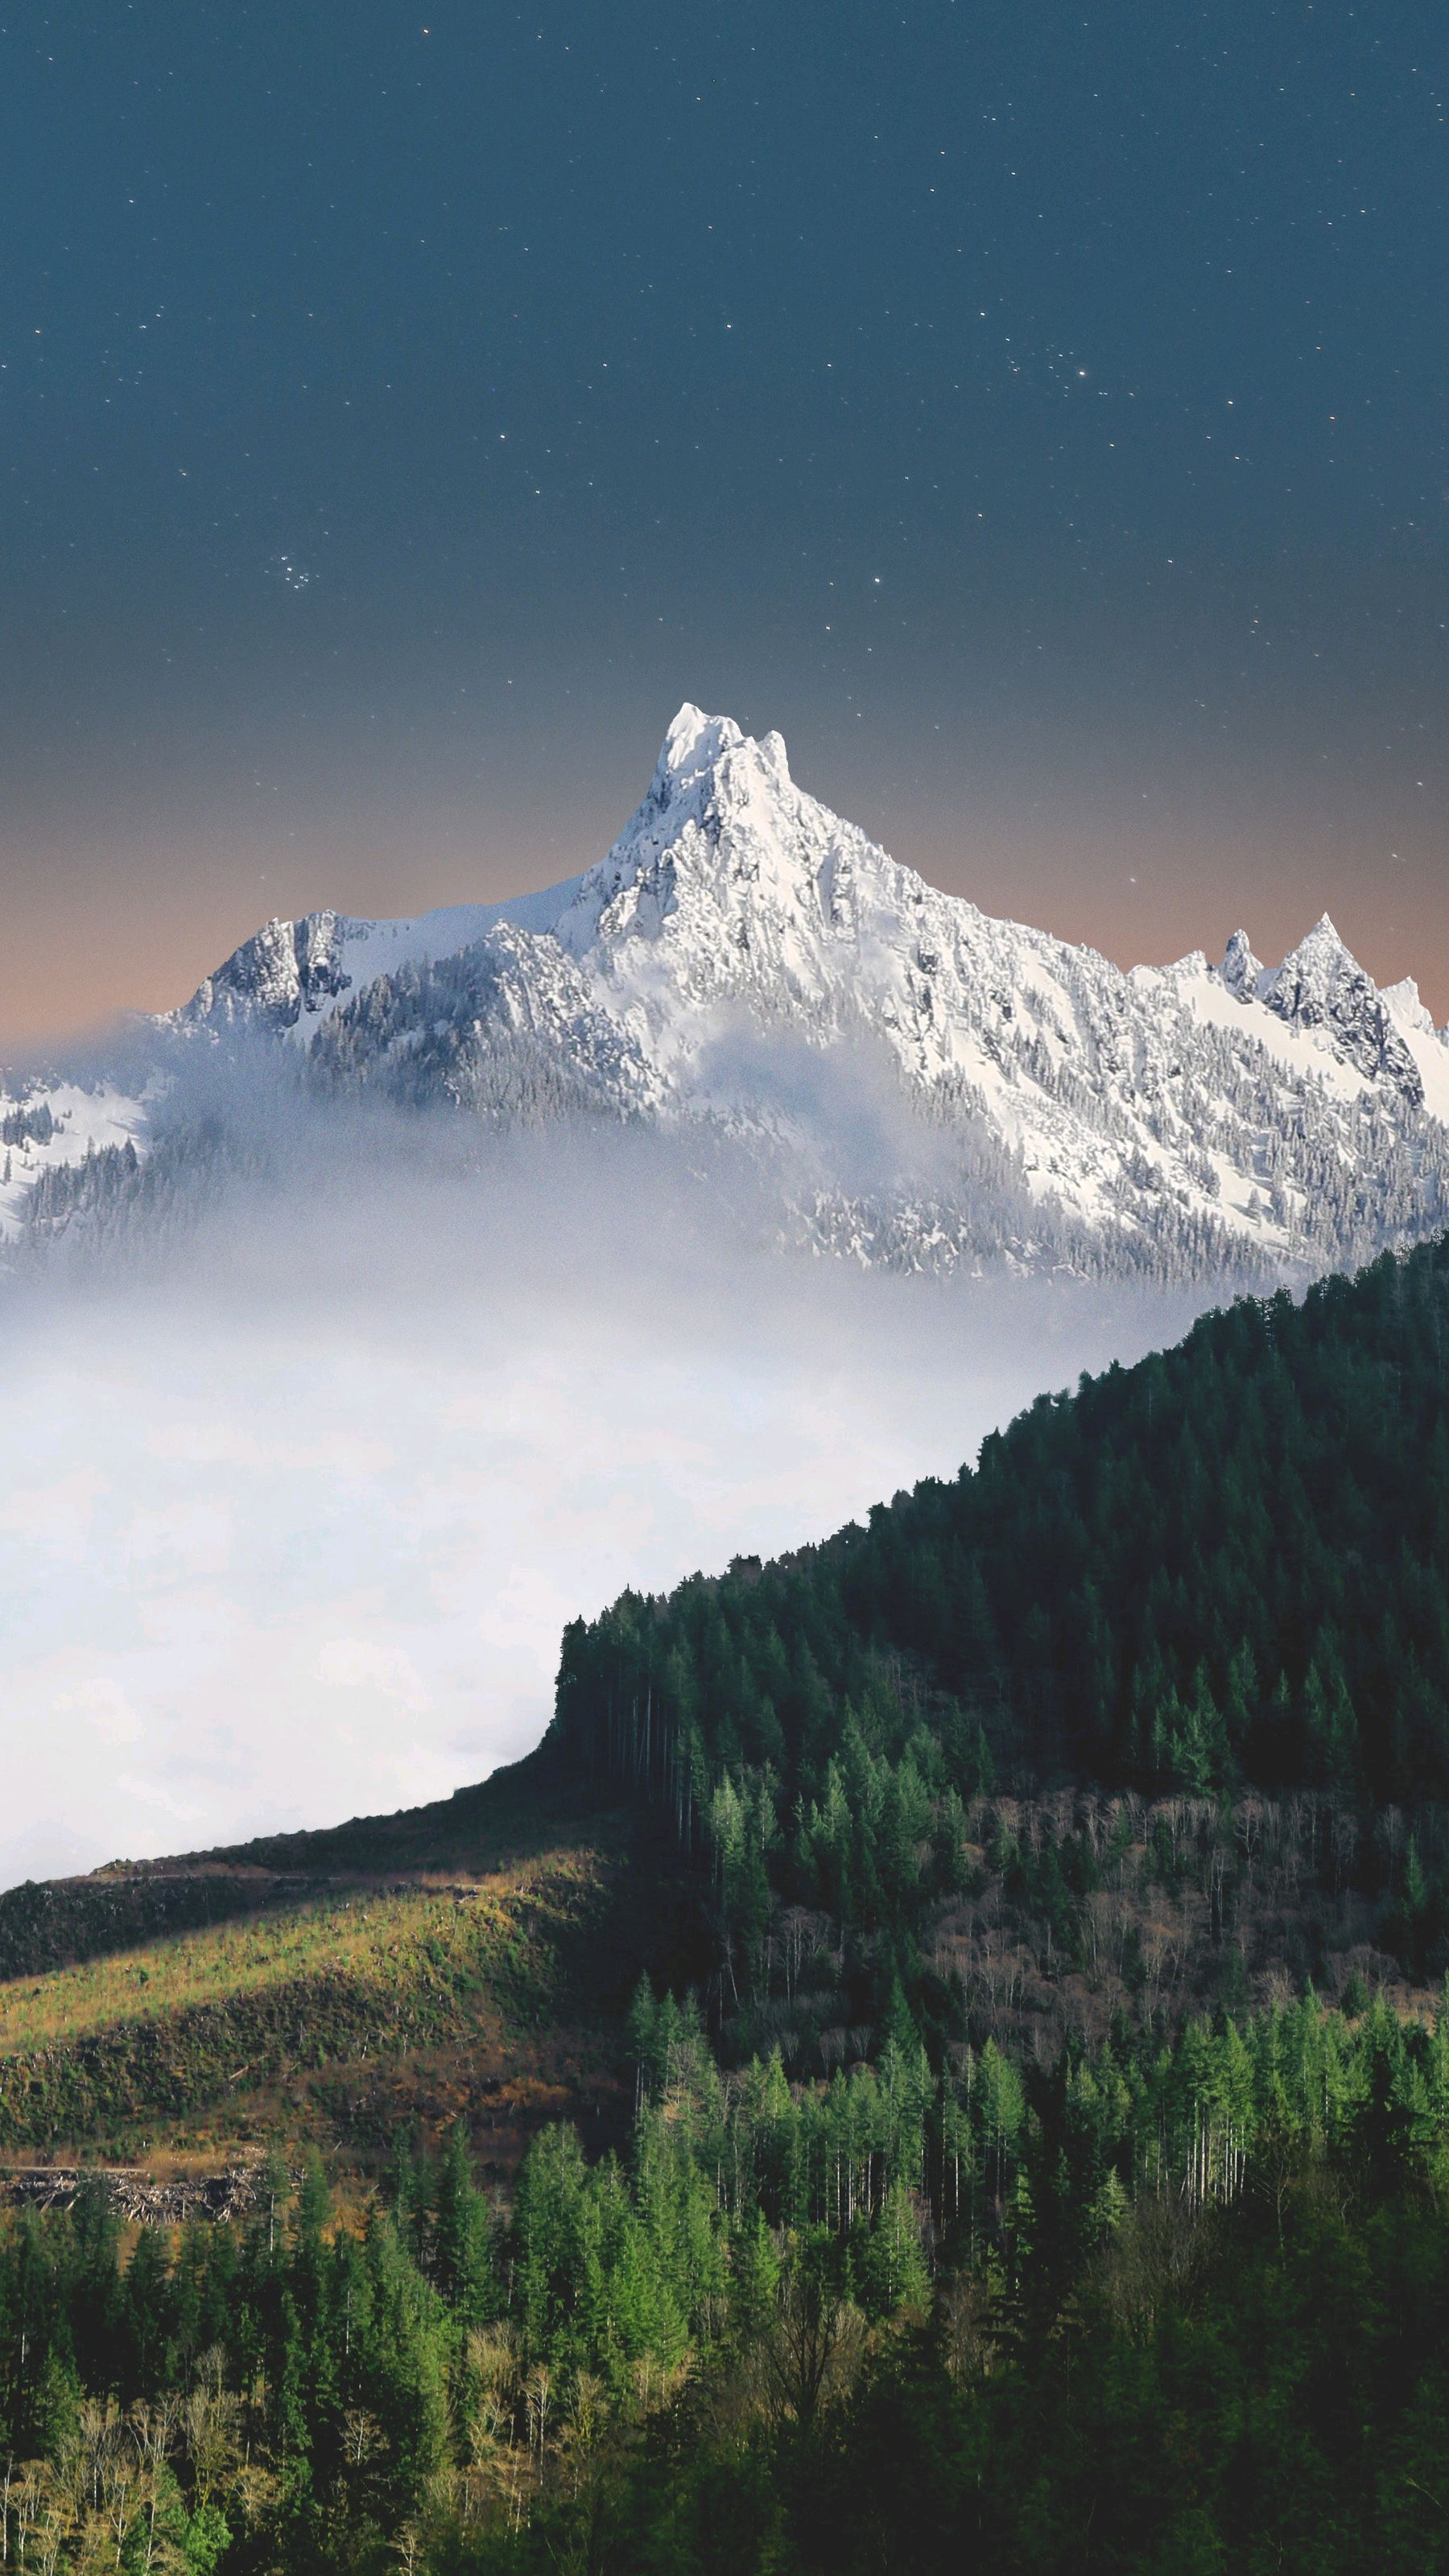 SnowMountains Green Forest Nature Scenery iPhone Wallpaper iphoneswallpapers com